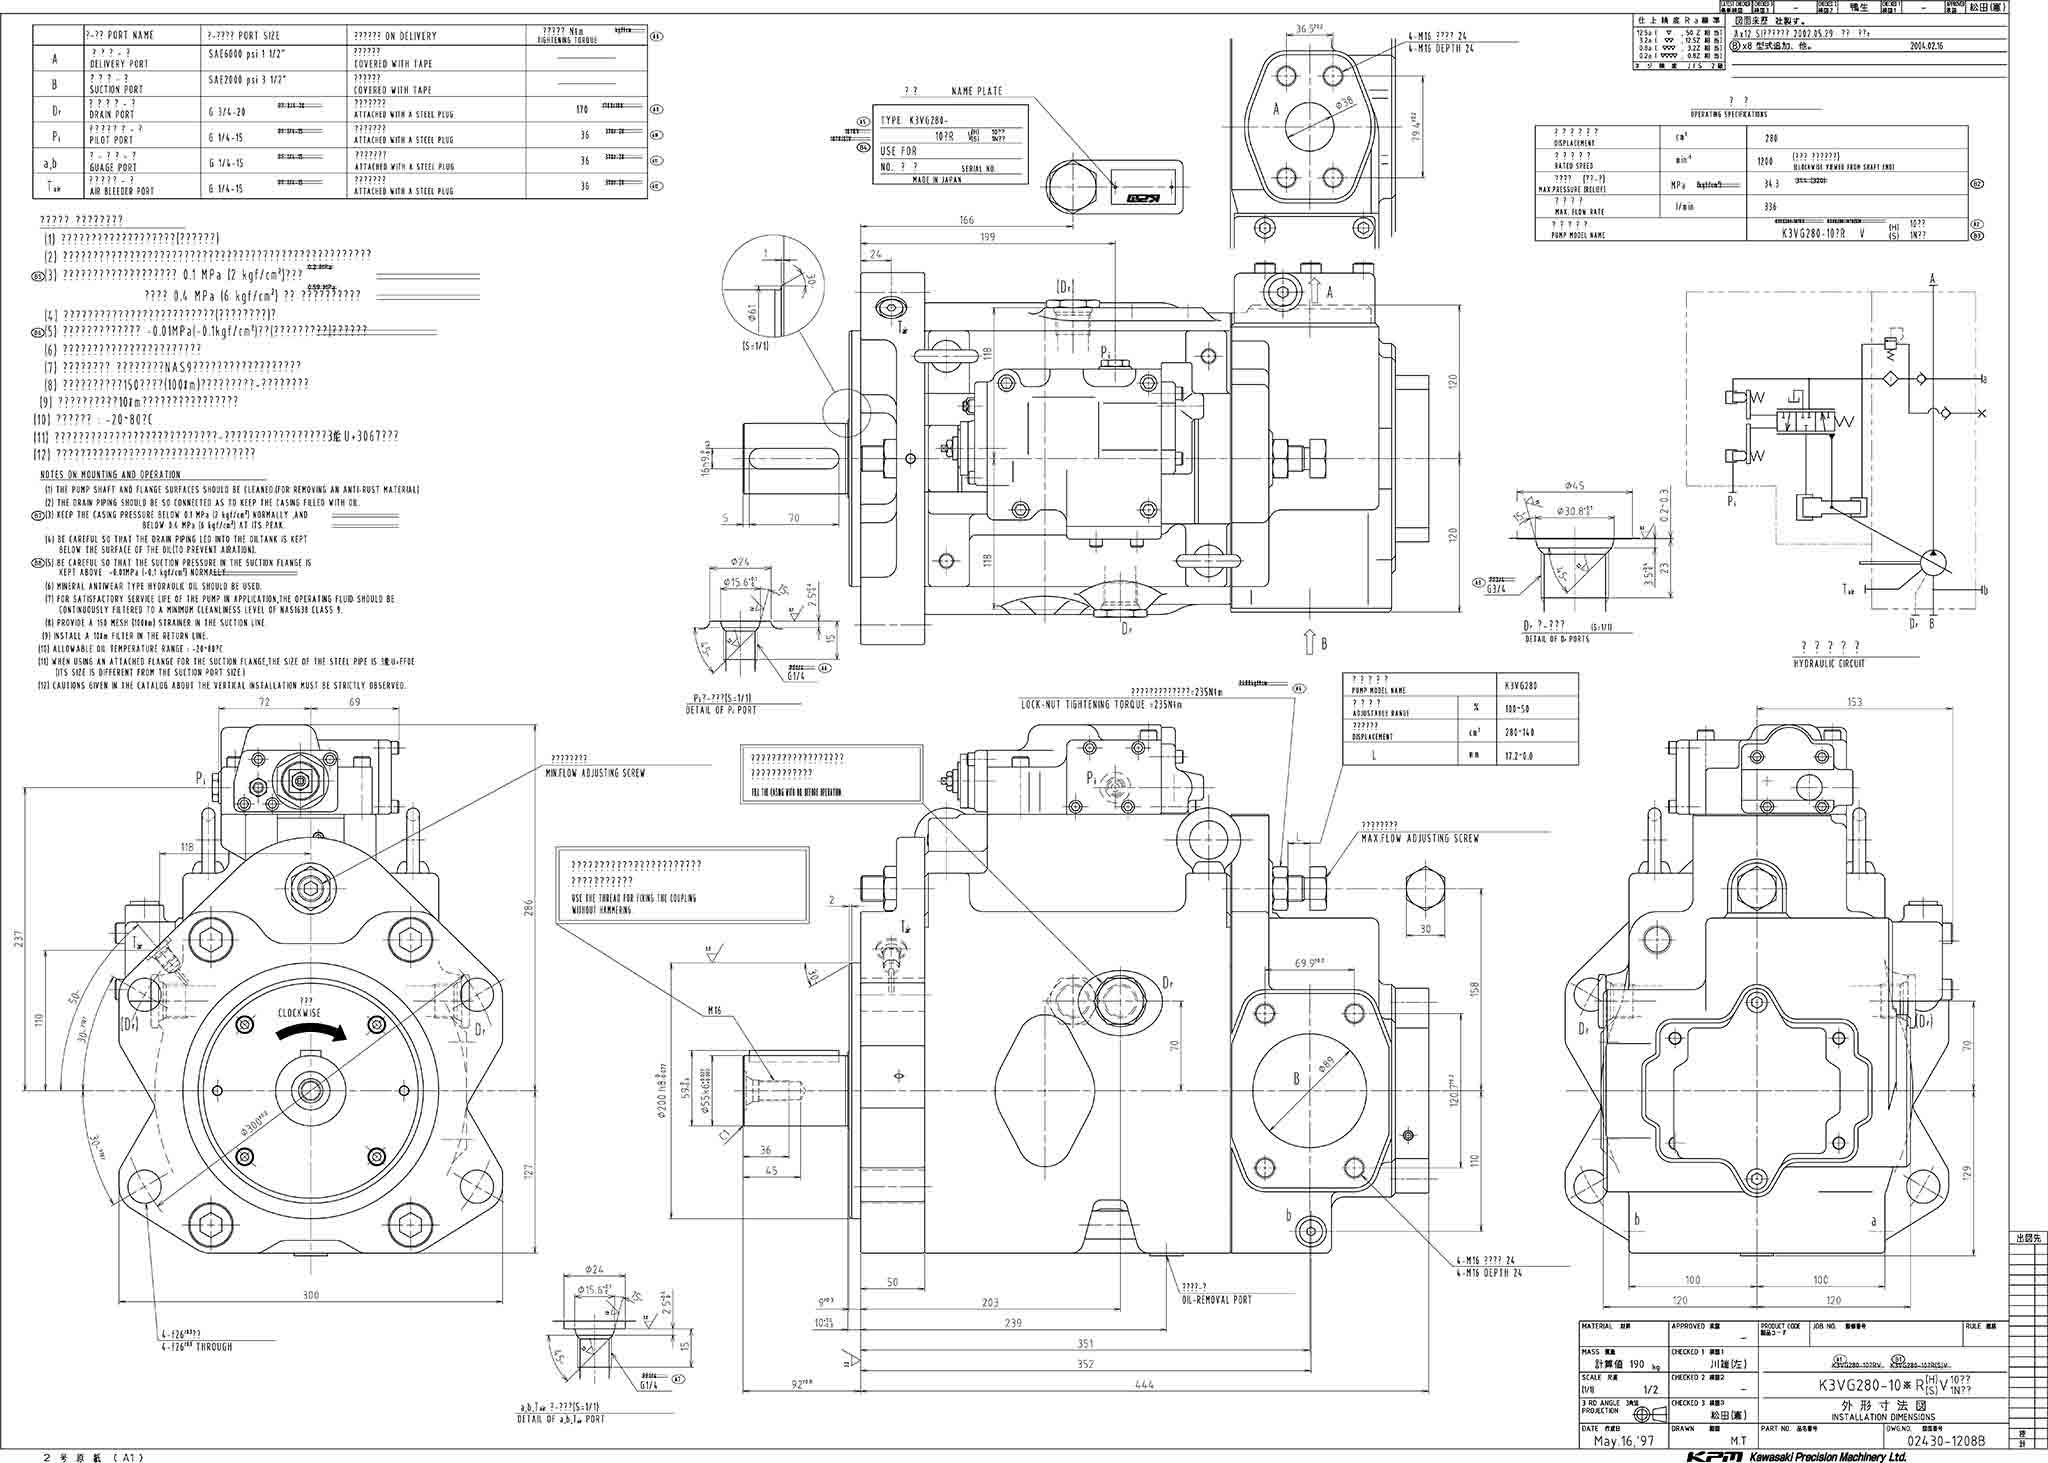 2000 cadillac eldorado electrical diagrams